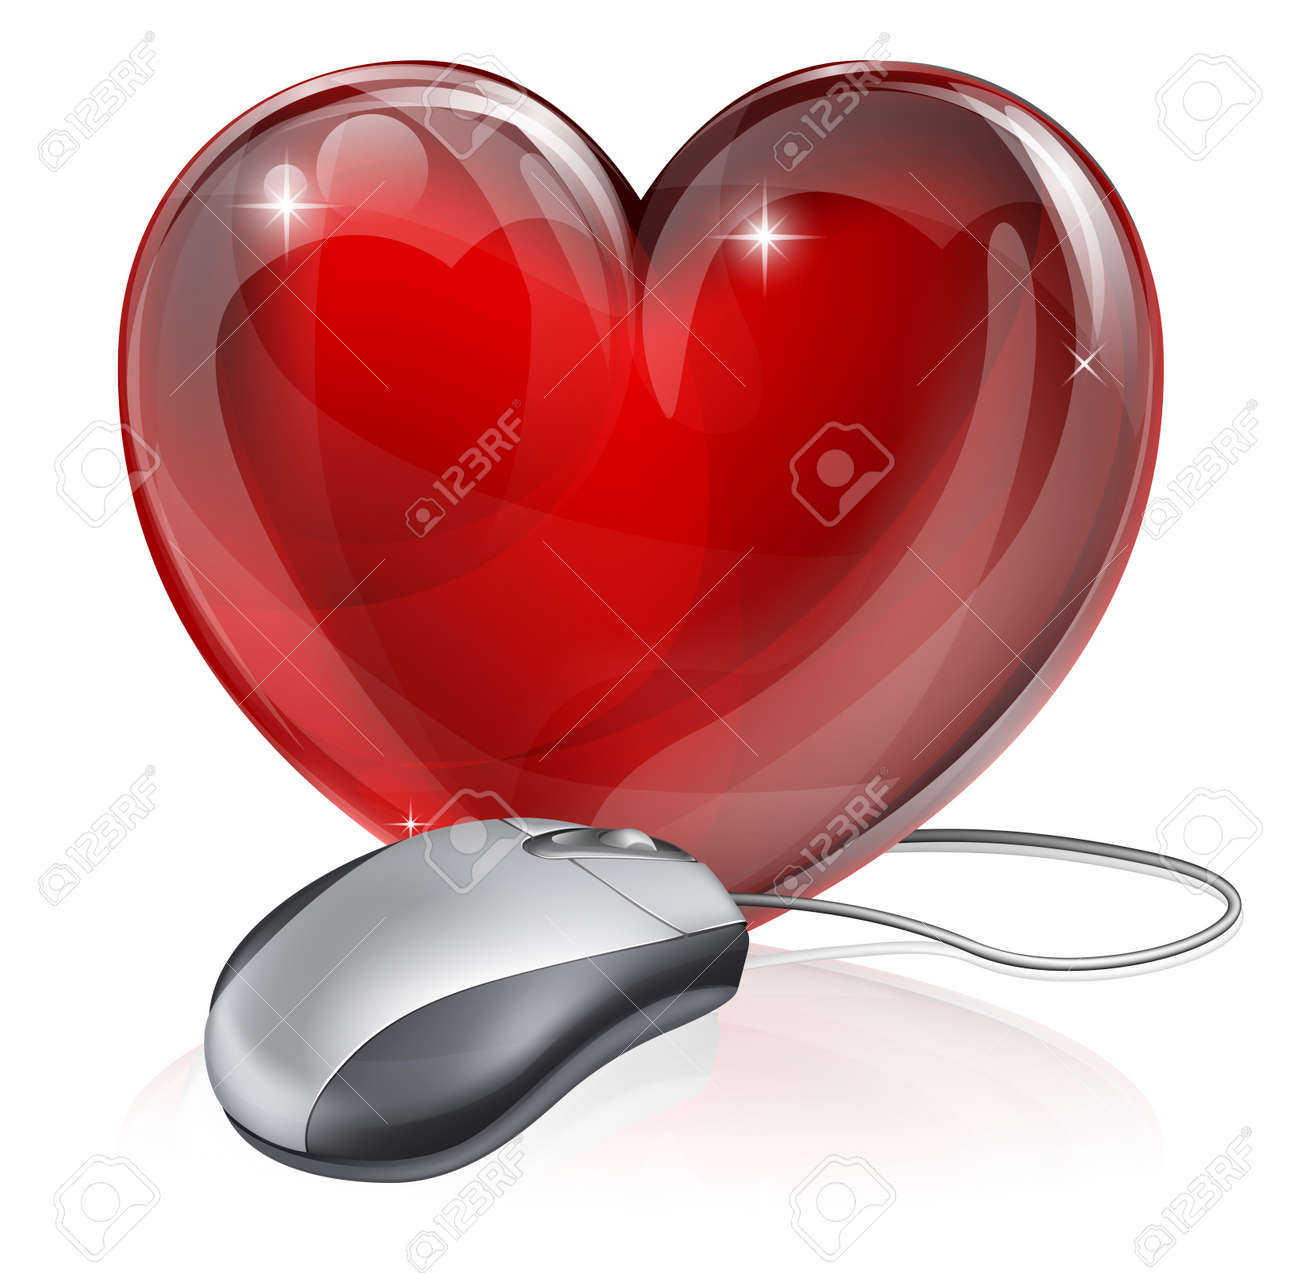 Illustration of a computer mouse connected to a red heart symbol, concept for online dating, romance or similar Stock Vector - 15567709